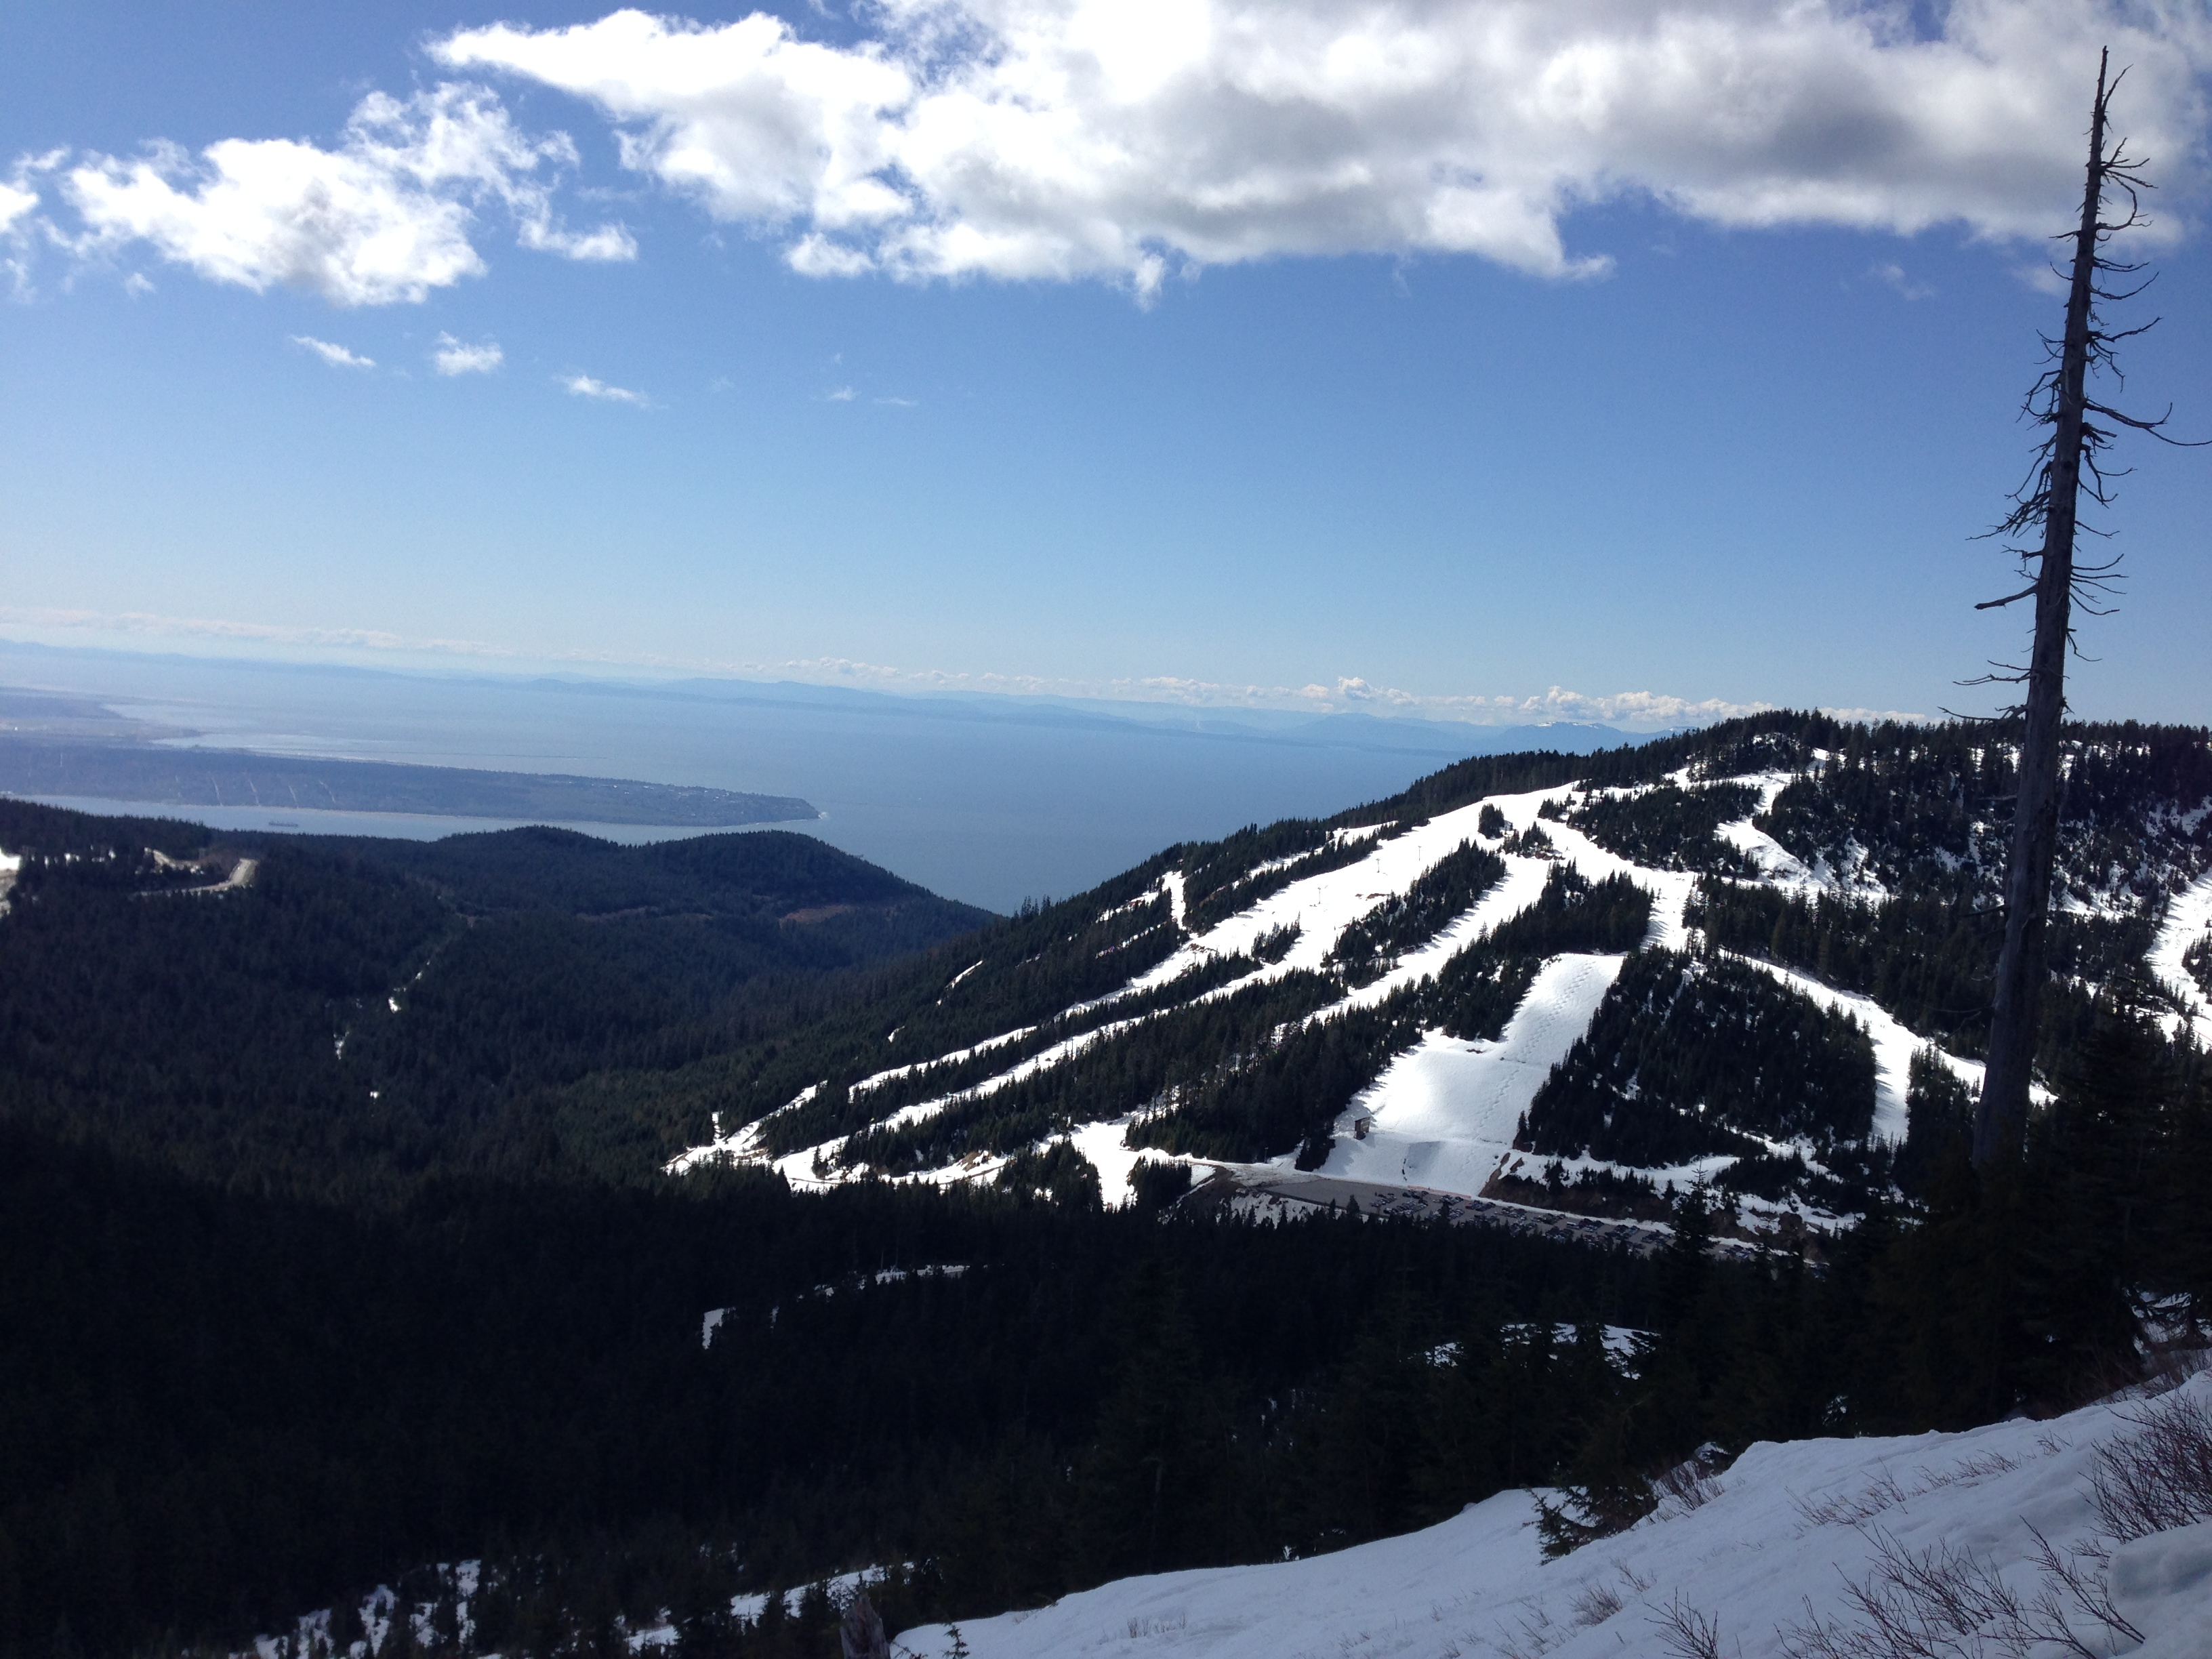 Cypress Mountain - April 12, 2014